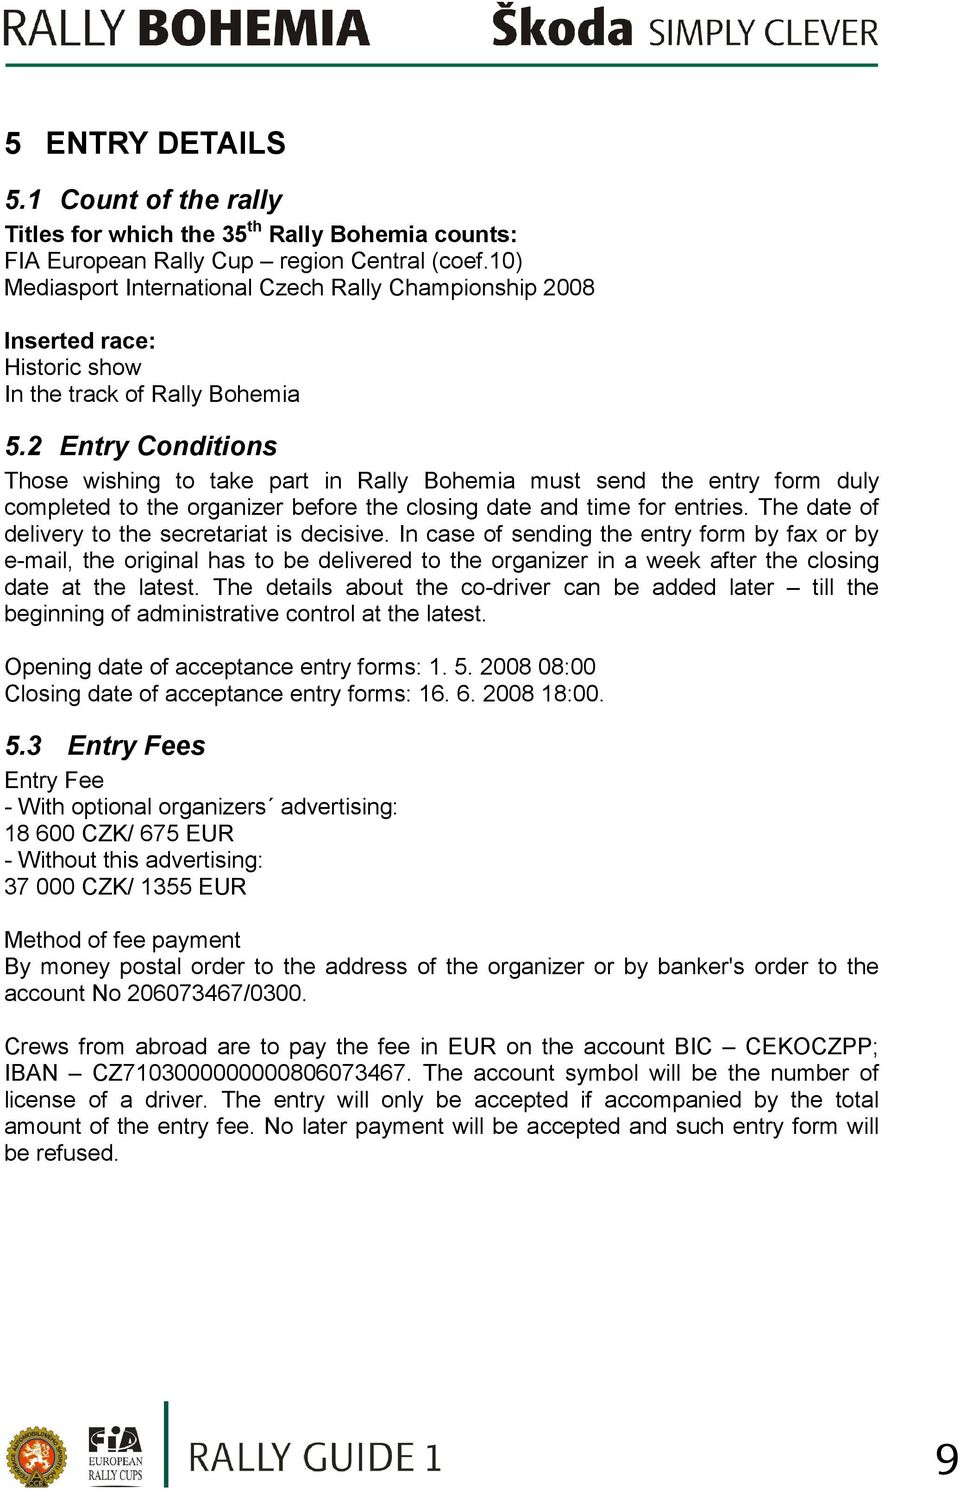 2 Entry Conditions Those wishing to take part in Rally Bohemia must send the entry form duly completed to the organizer before the closing date and time for entries.